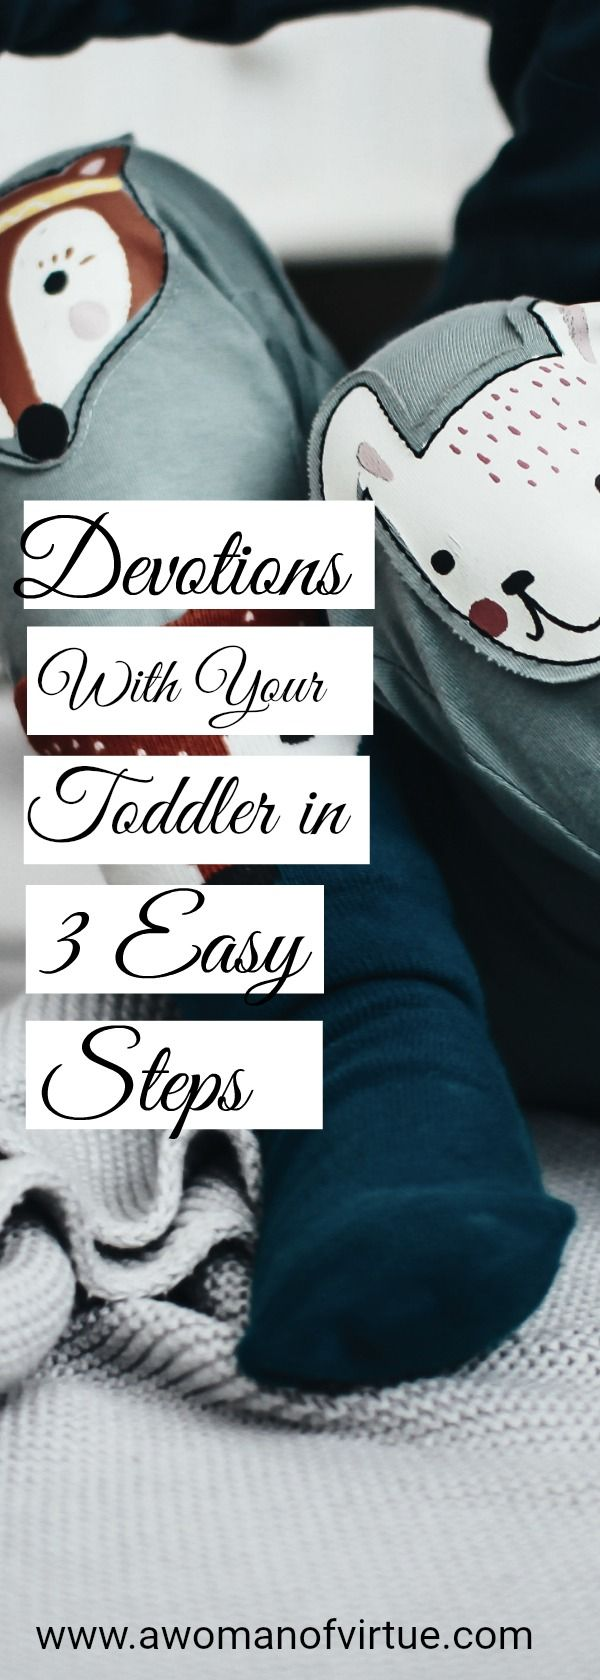 When I started contemplating devotions with my two toddlers who are 2 and 3-years-old, I was downright nervous!